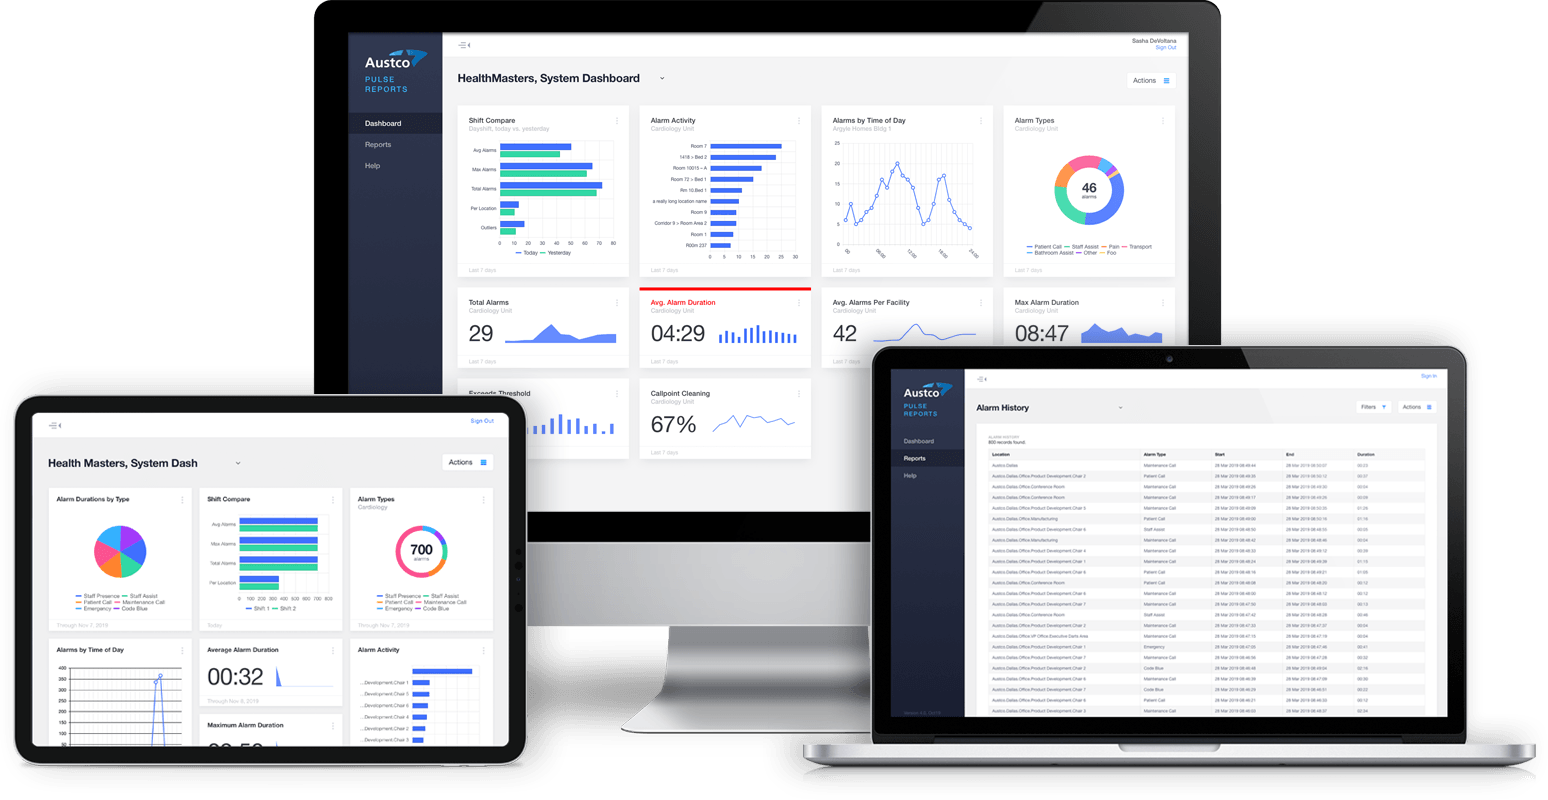 Pulse Reports is Austco's enterprise reporting platform